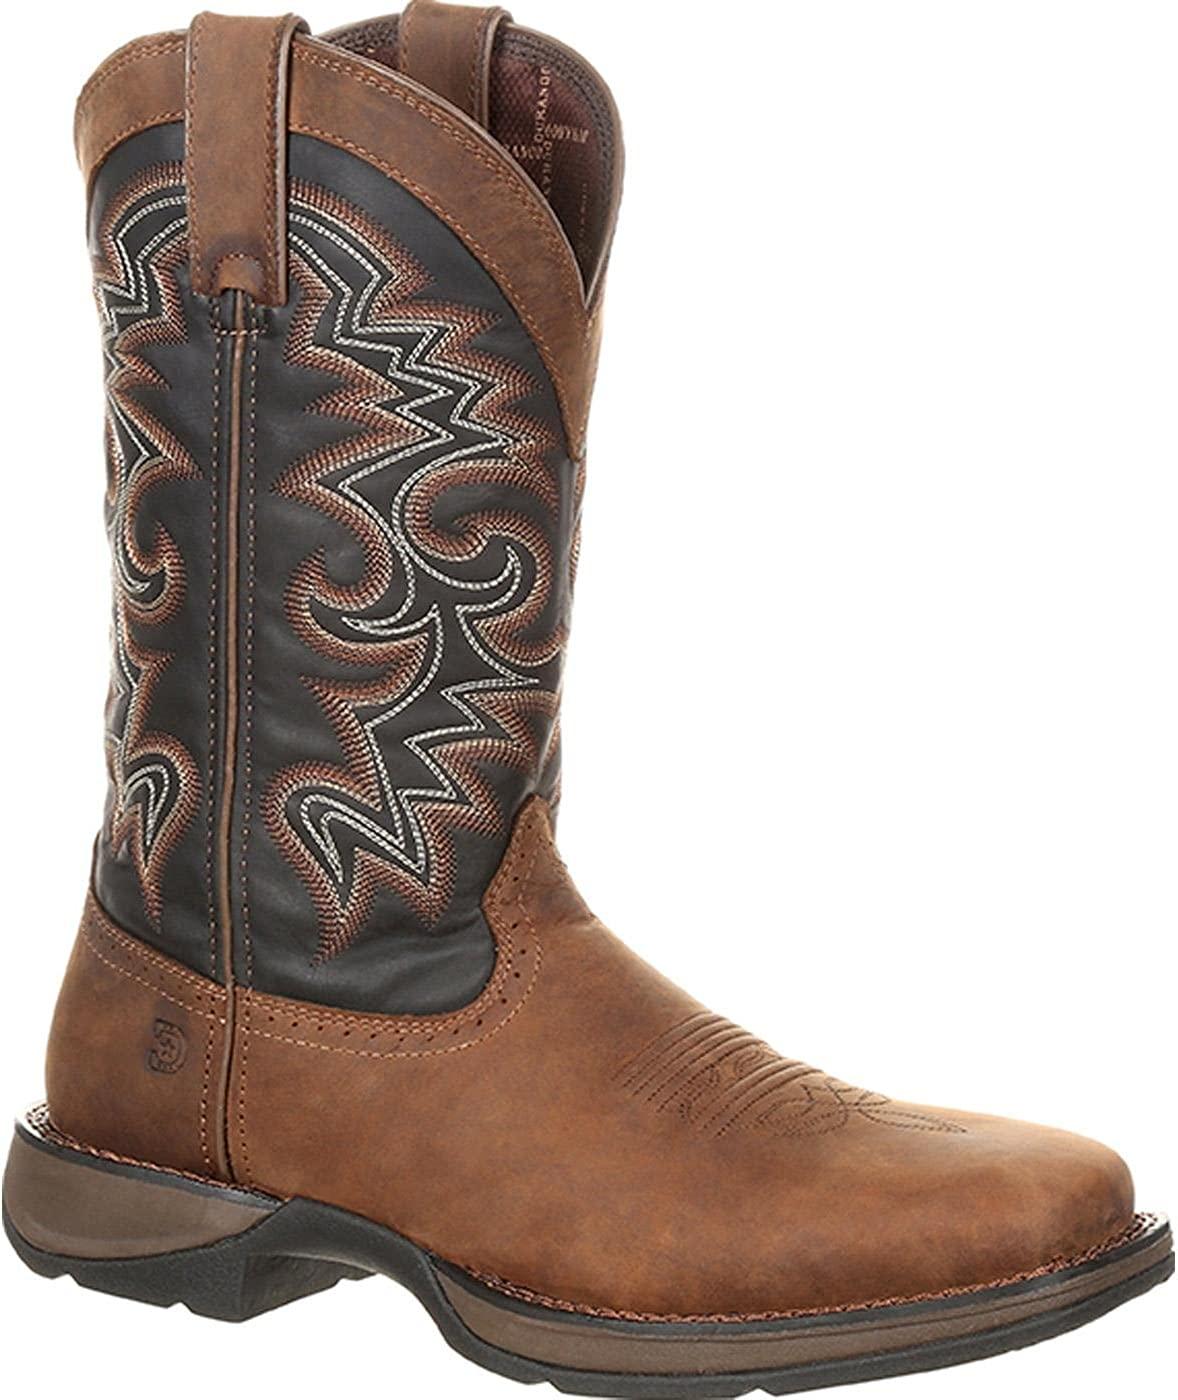 Durango Rebel Pull-On Western Boot 71LQ7DstCvL